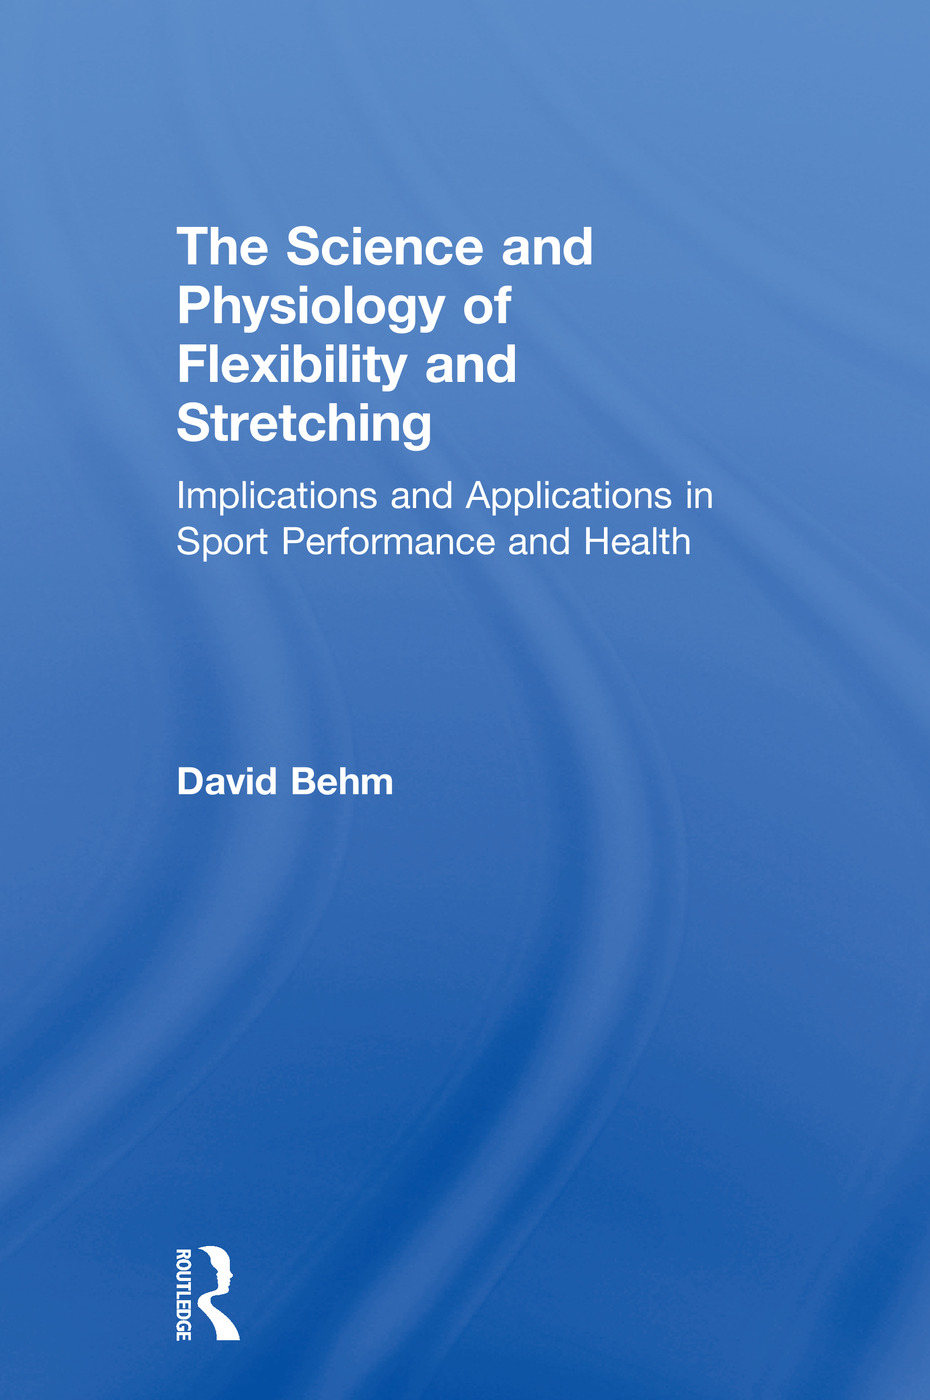 The Science and Physiology of Flexibility and Stretching: Implications and Applications in Sport Performance and Health book cover